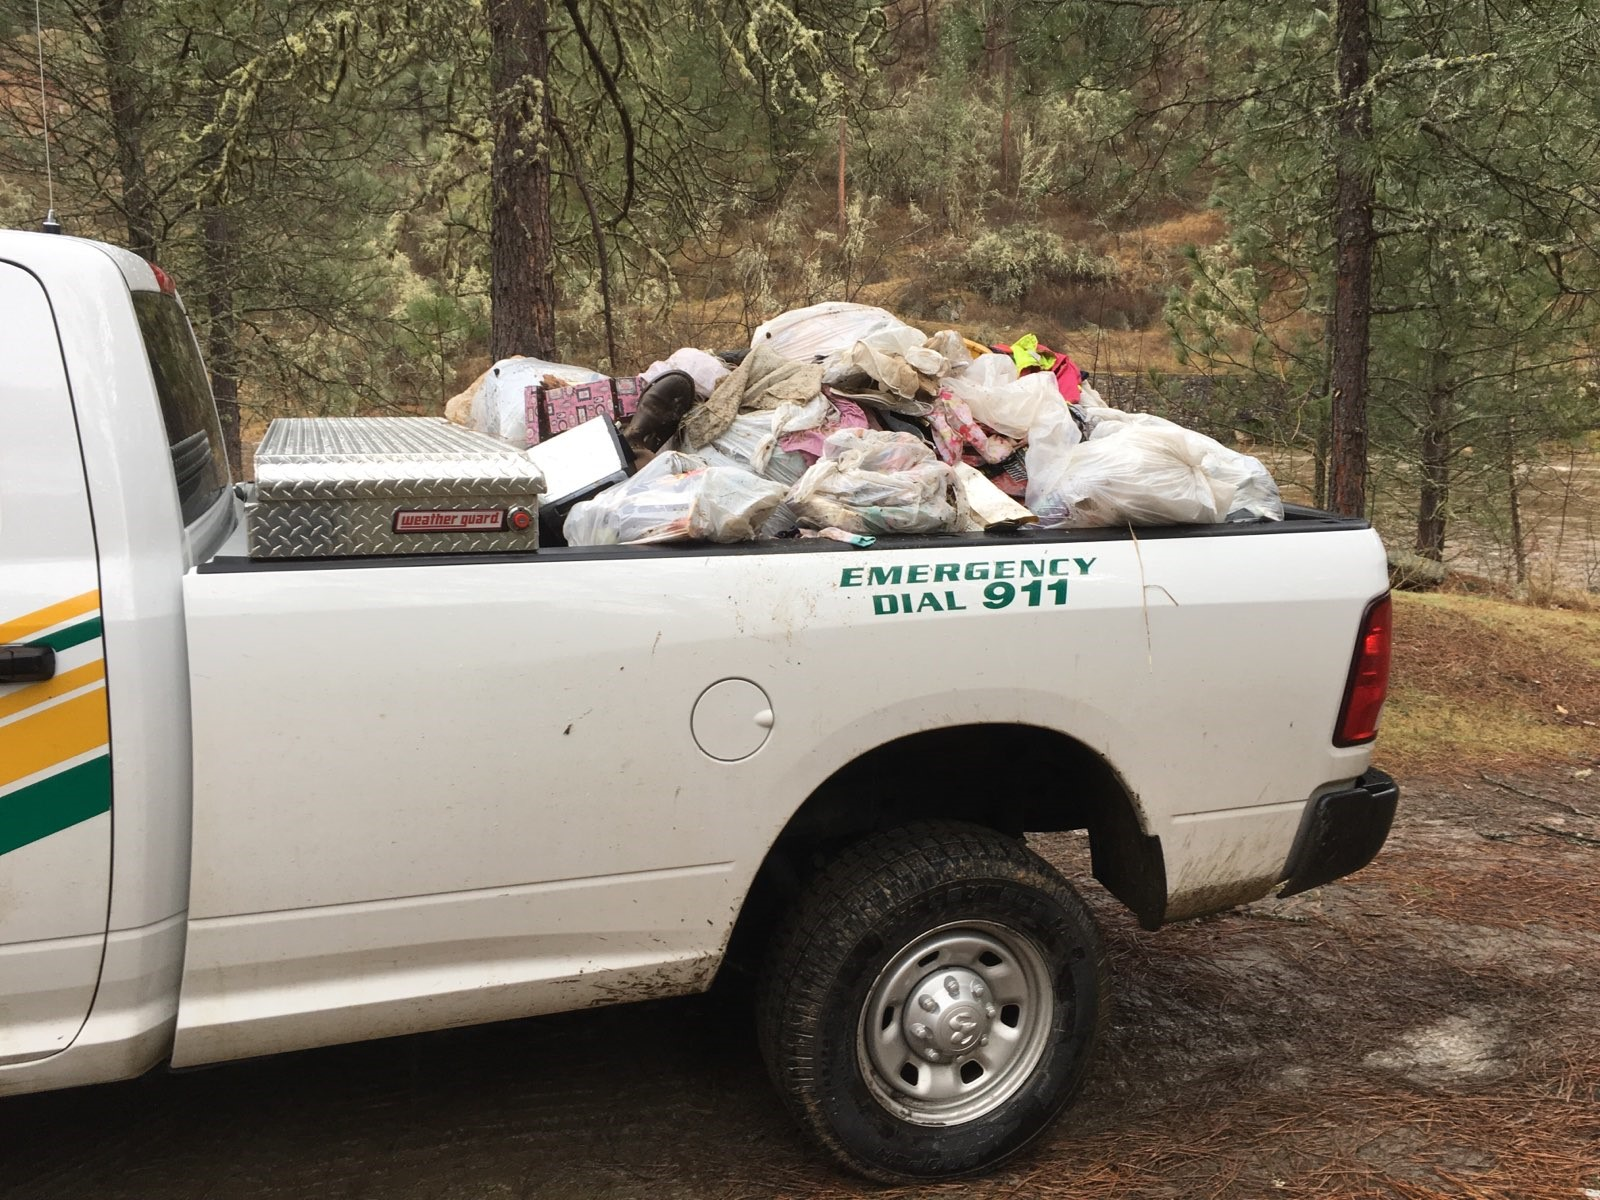 One of the pick-up truck loads of litter removed from a dispersed campsite.